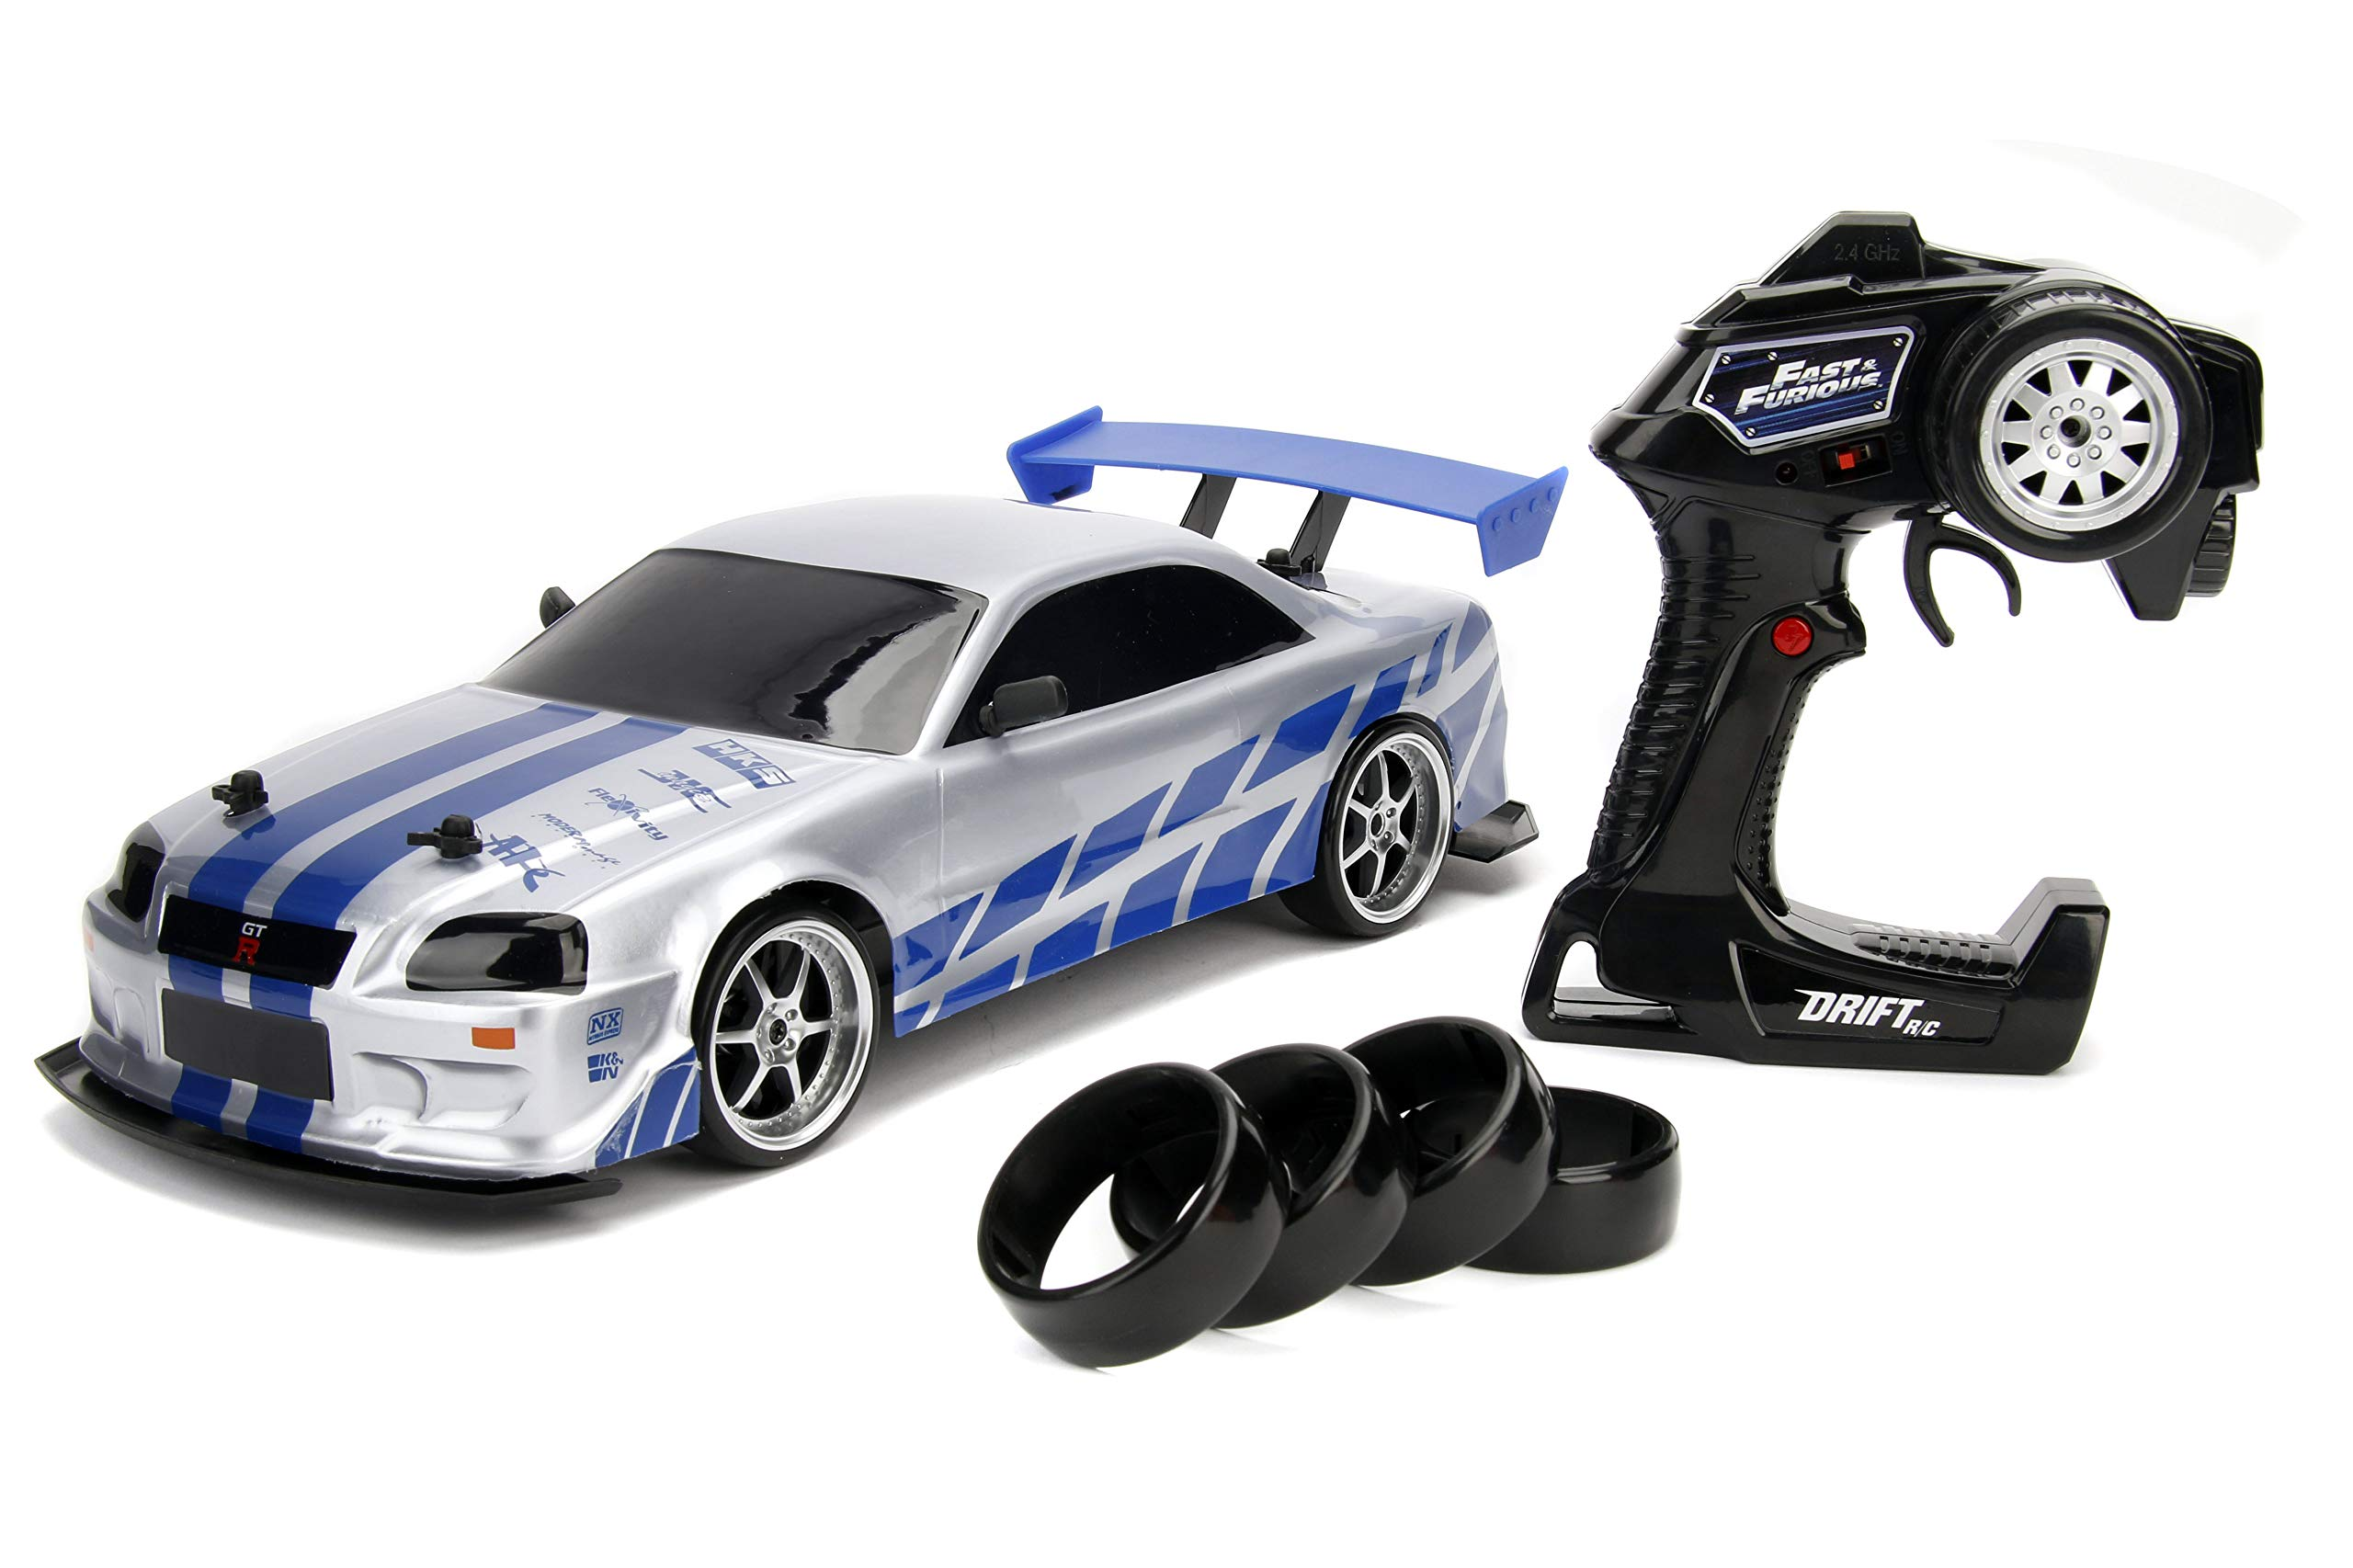 Jada 99701 Toys Fast & Furious Brian's Nissan Skyline GT-R (BN34) Drift Power Slide RC Radio Remote Control Toy Race Car with Extra Tires, 1:10 Scale, Silver/Blue by Jada (Image #1)